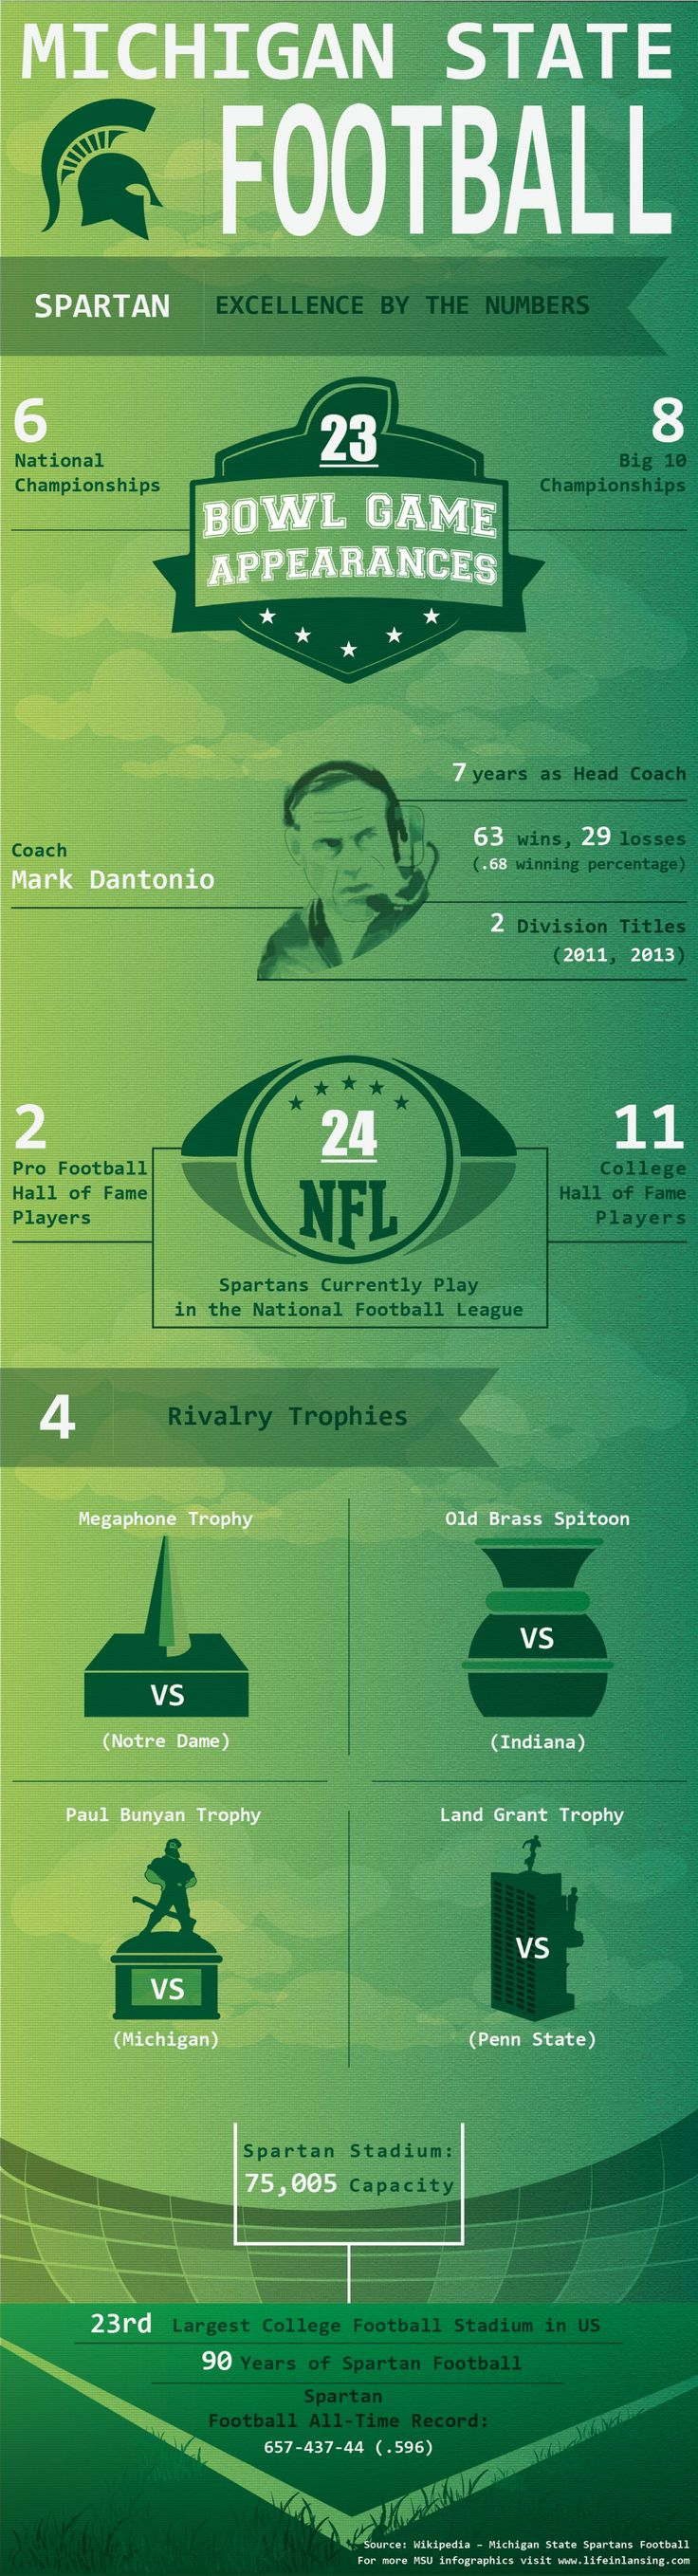 Nice infographic showing statistics for Michigan State Spartan Football team, including Big 10 Championships, Division Championships, Coach Dantonio win record, rivalry trophies, Spartans in the NFL, and overall win percentage.